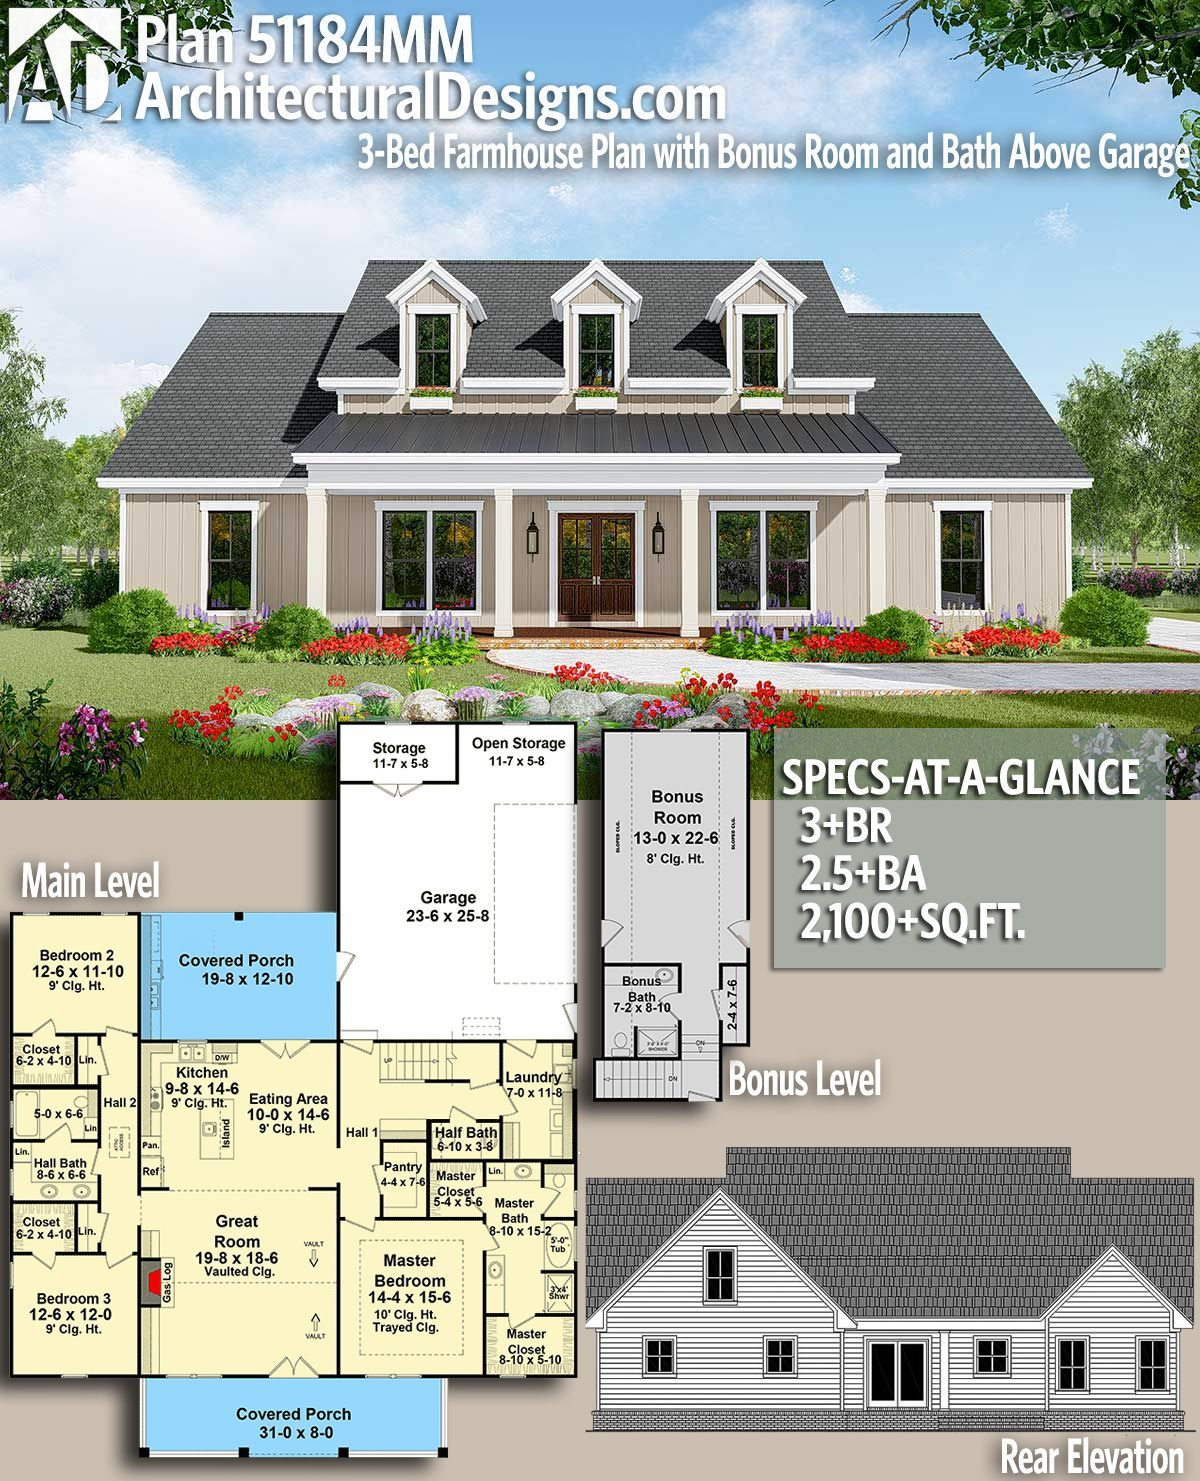 10 Gorgeous Ranch House Plans Ideas Ranch House Plans Farmhouse Plans House Plans Farmhouse